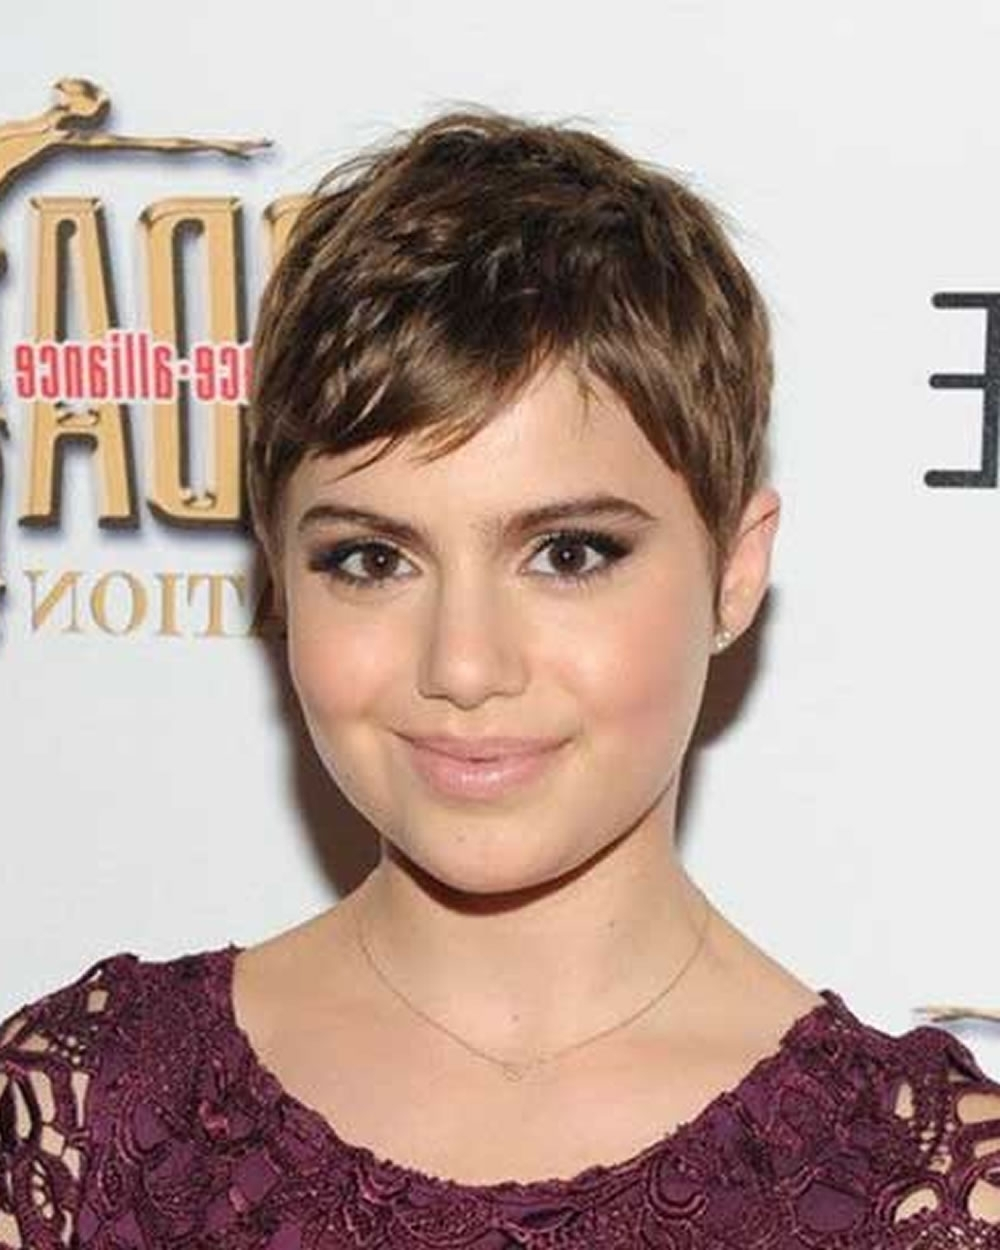 31 Chic Short Haircut Ideas 2018 & Pixie & Bob Hair Inspiration Pertaining To Newest Pixie Hairstyles For Kids (View 14 of 15)